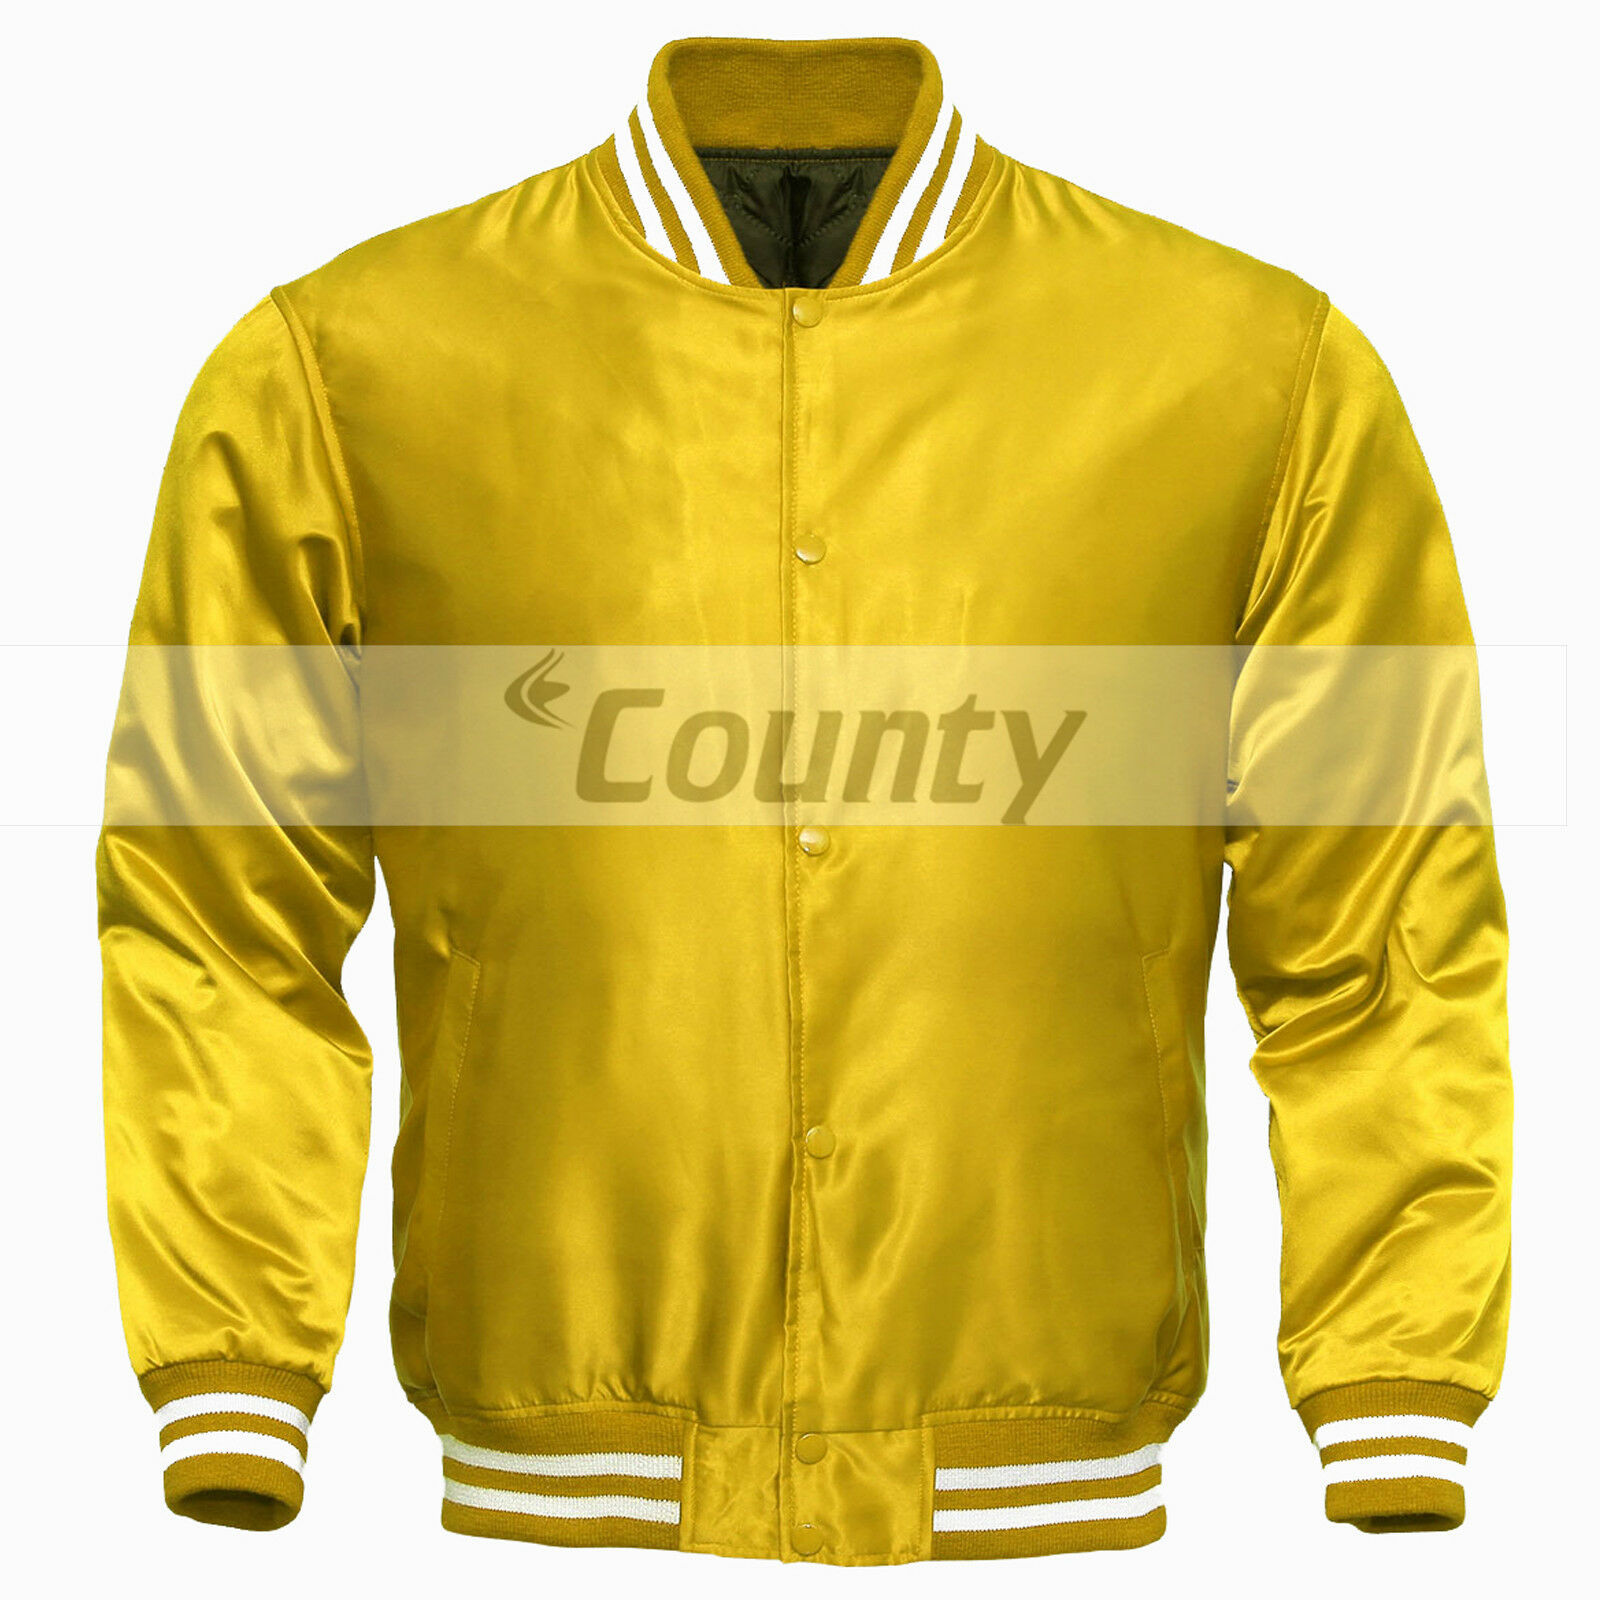 Primary image for Letterman Baseball College Varsity Bomber Super Jacket Sports Wear Yellow Satin